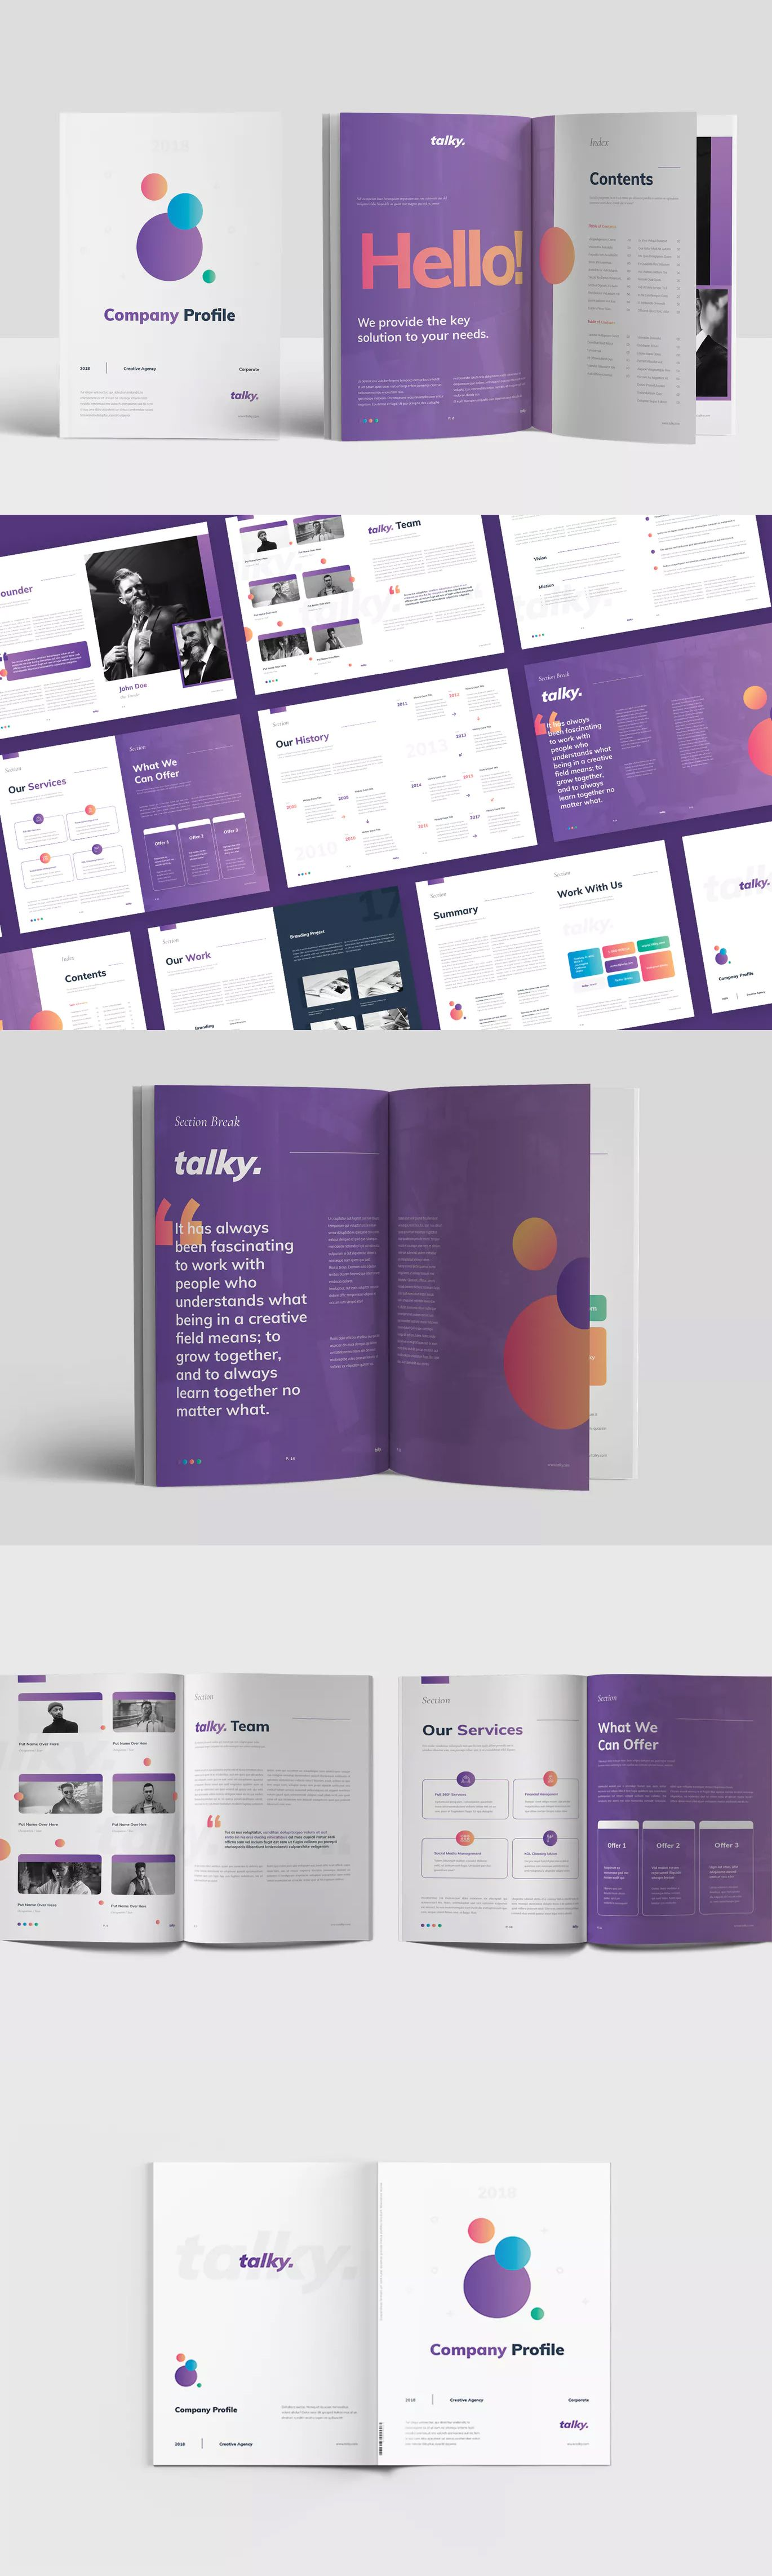 Company Profile Template InDesign INDD - A4 | Company Profile ...